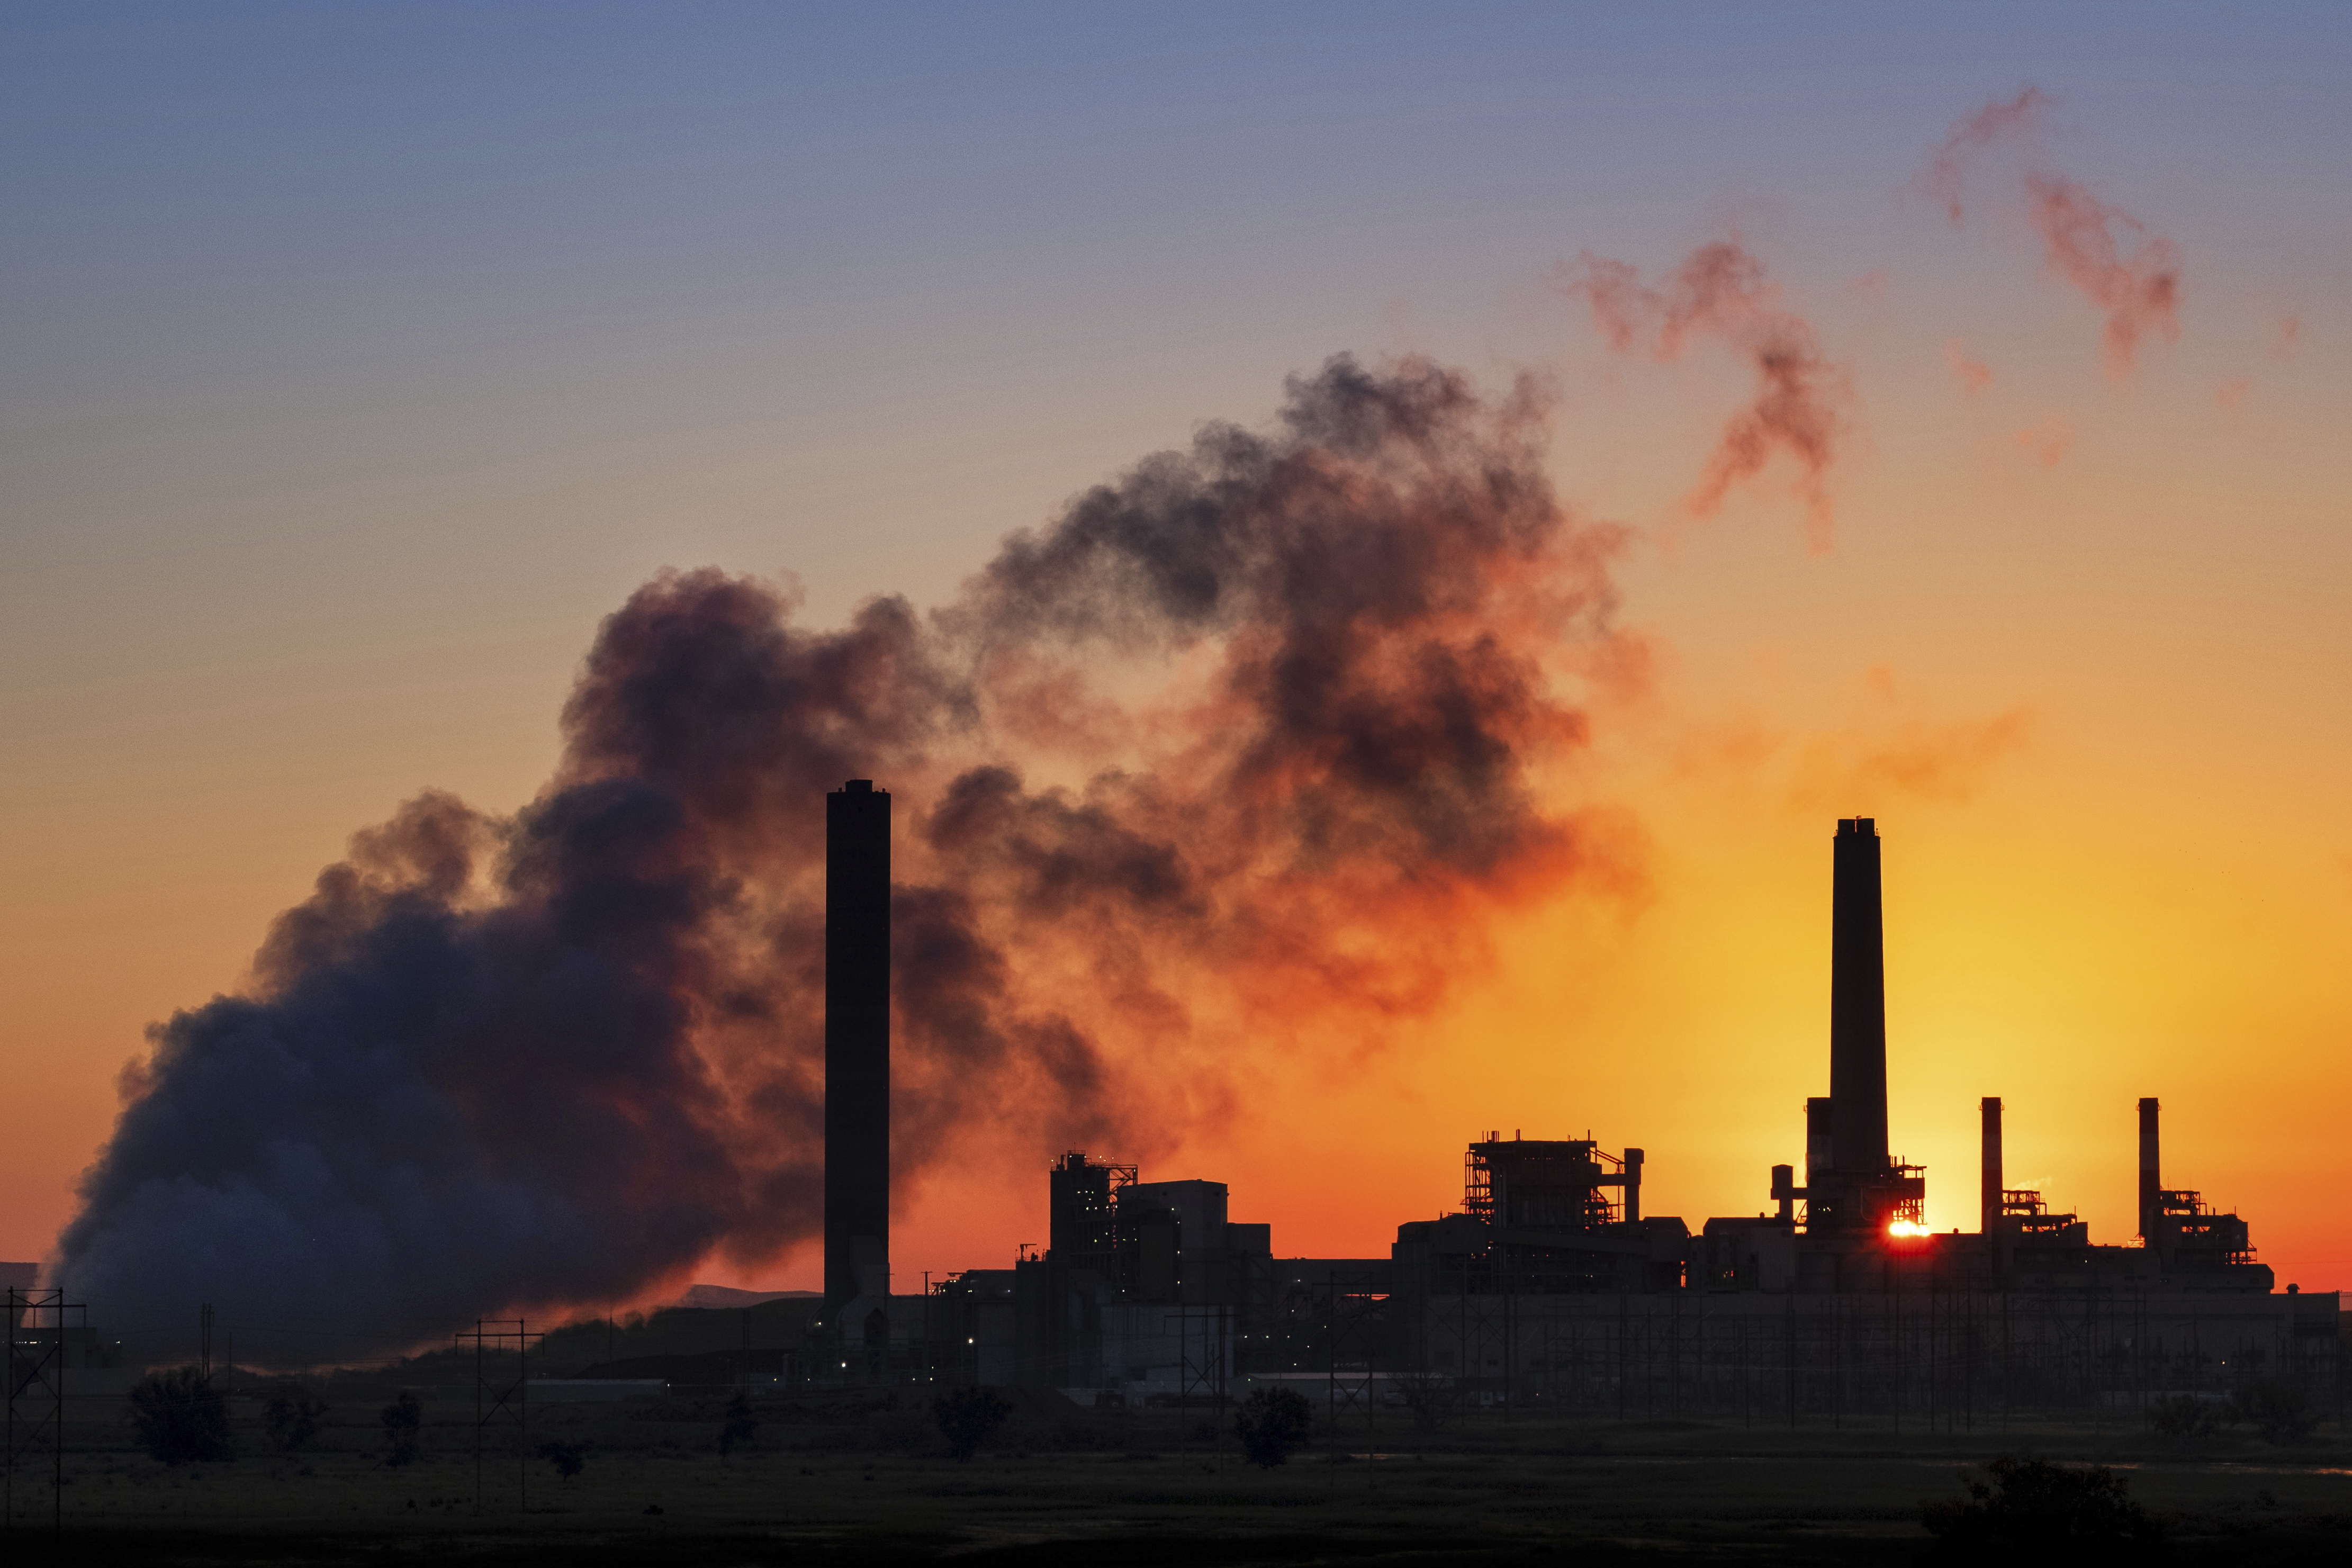 Study Shows Coal Plant Shutdowns Save Lives and Crops